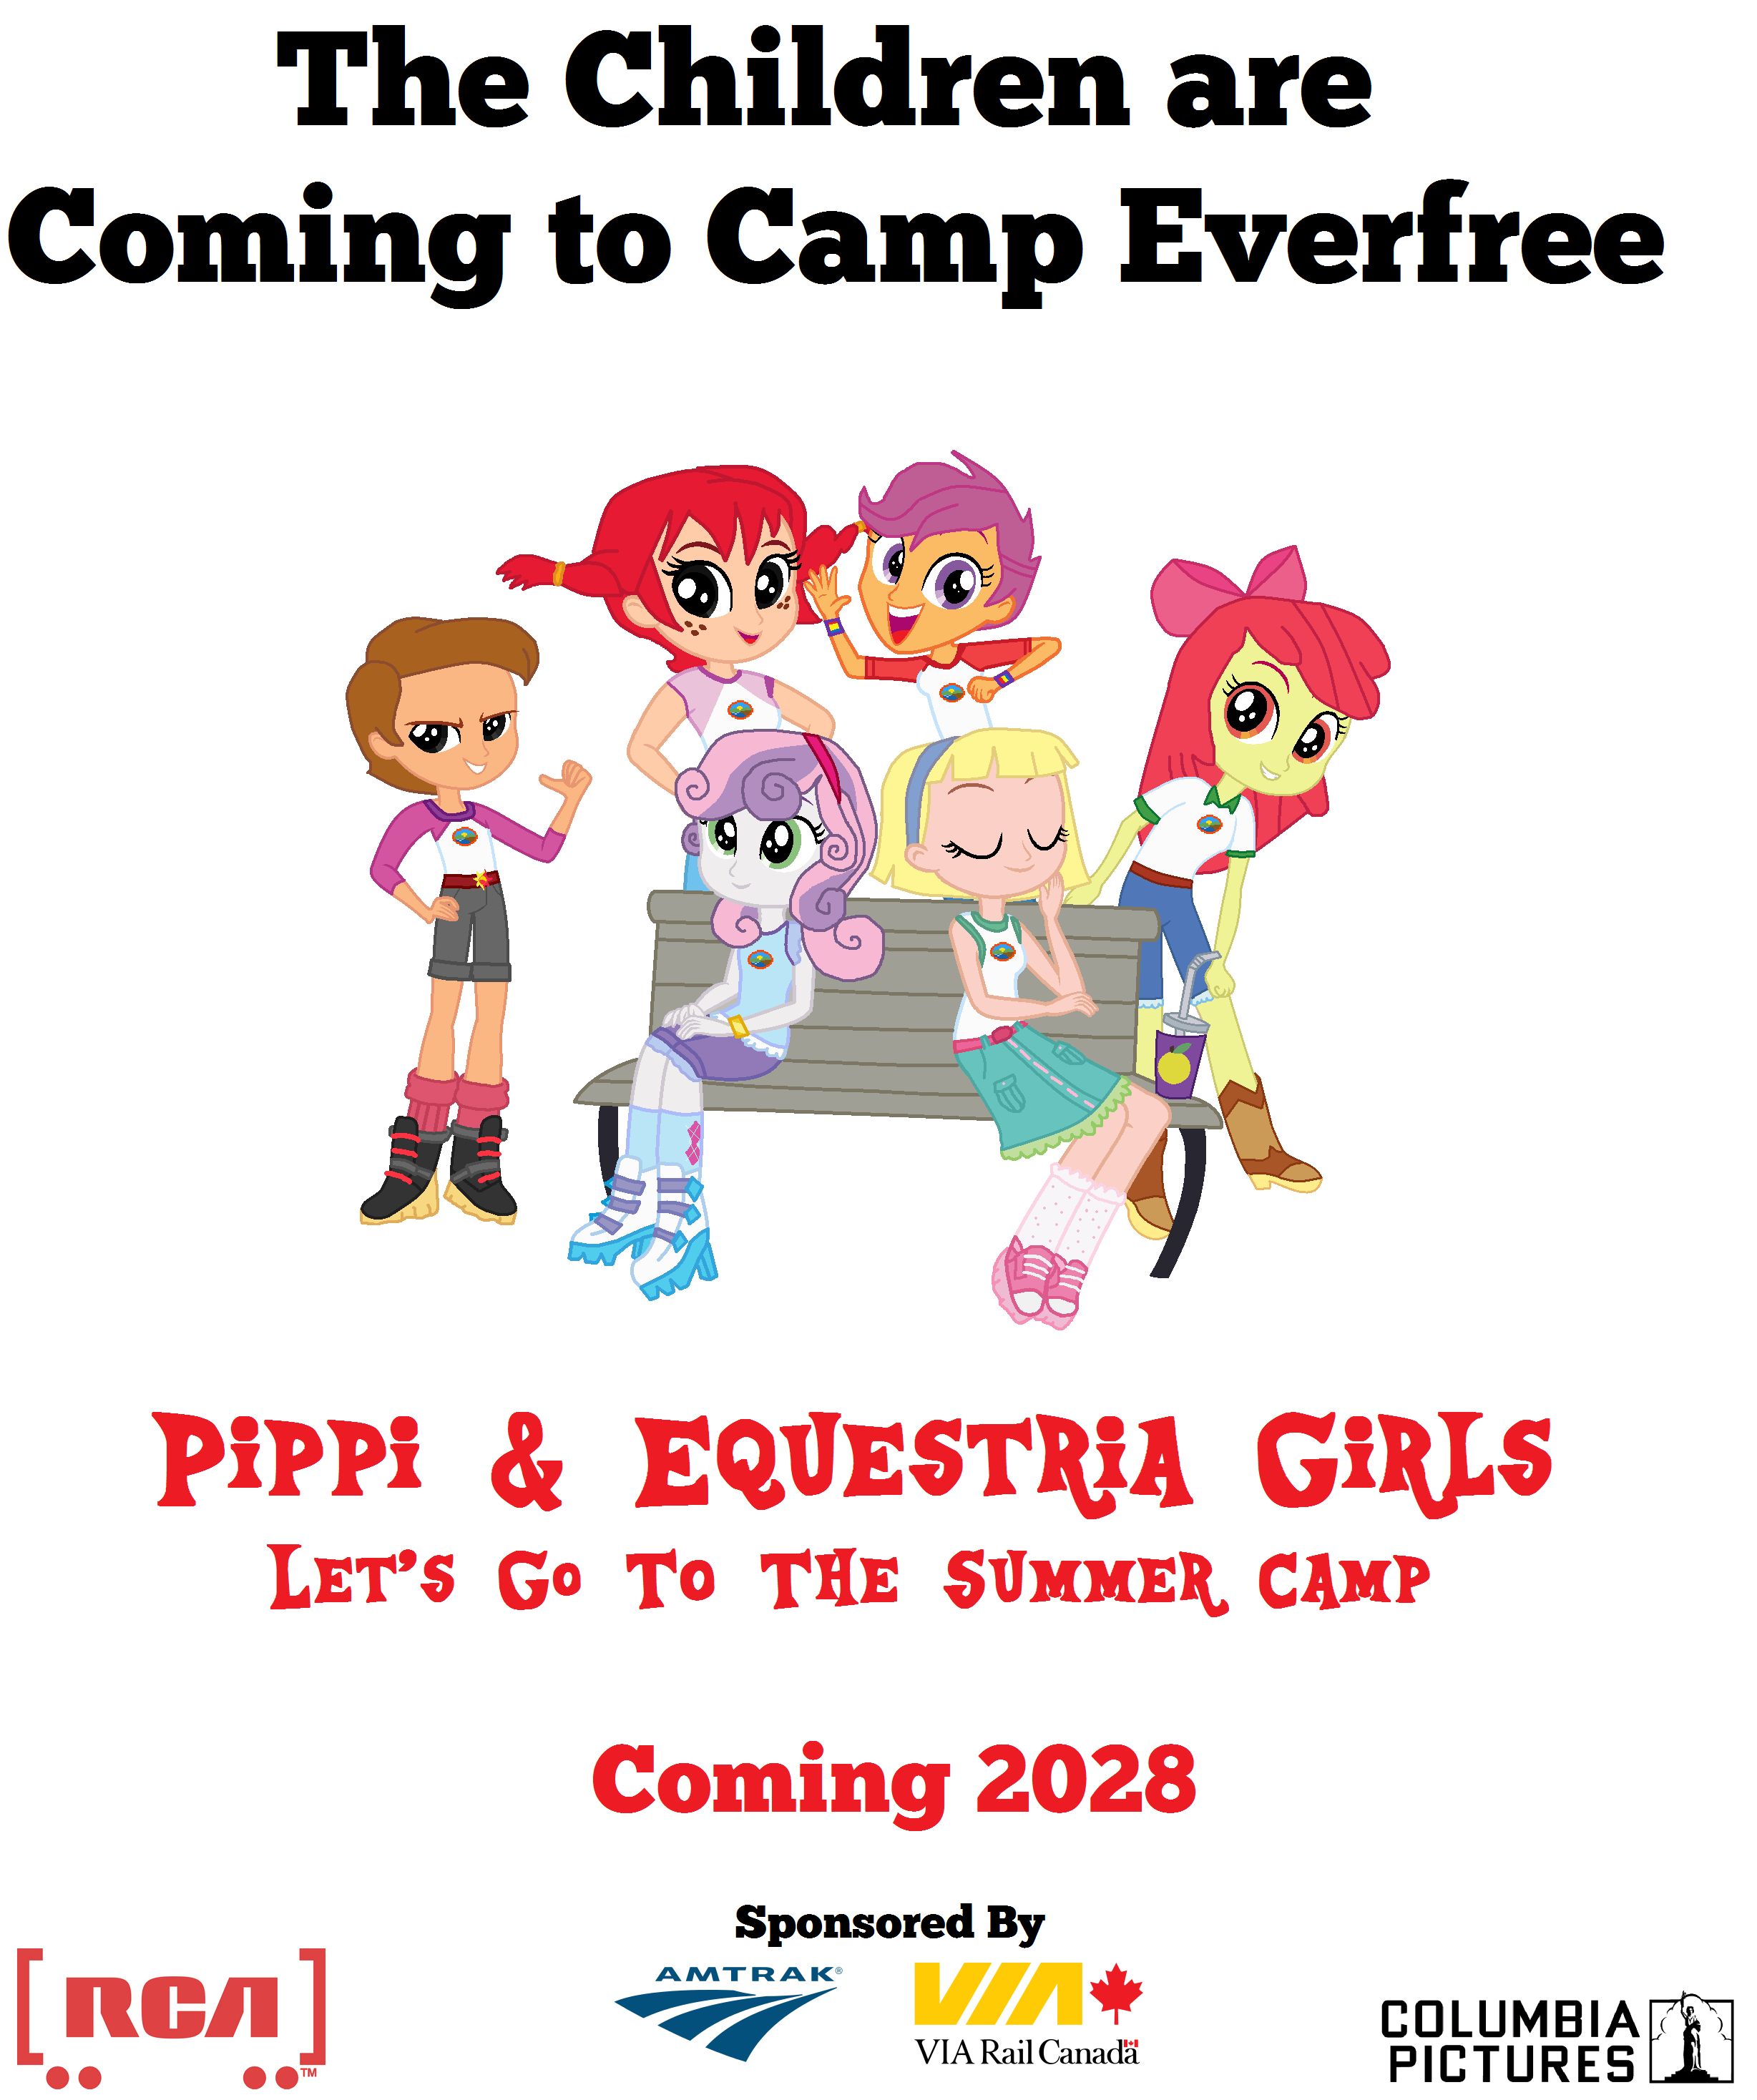 Pippi & Equestria Girls: Let's Go to the Summer Camp